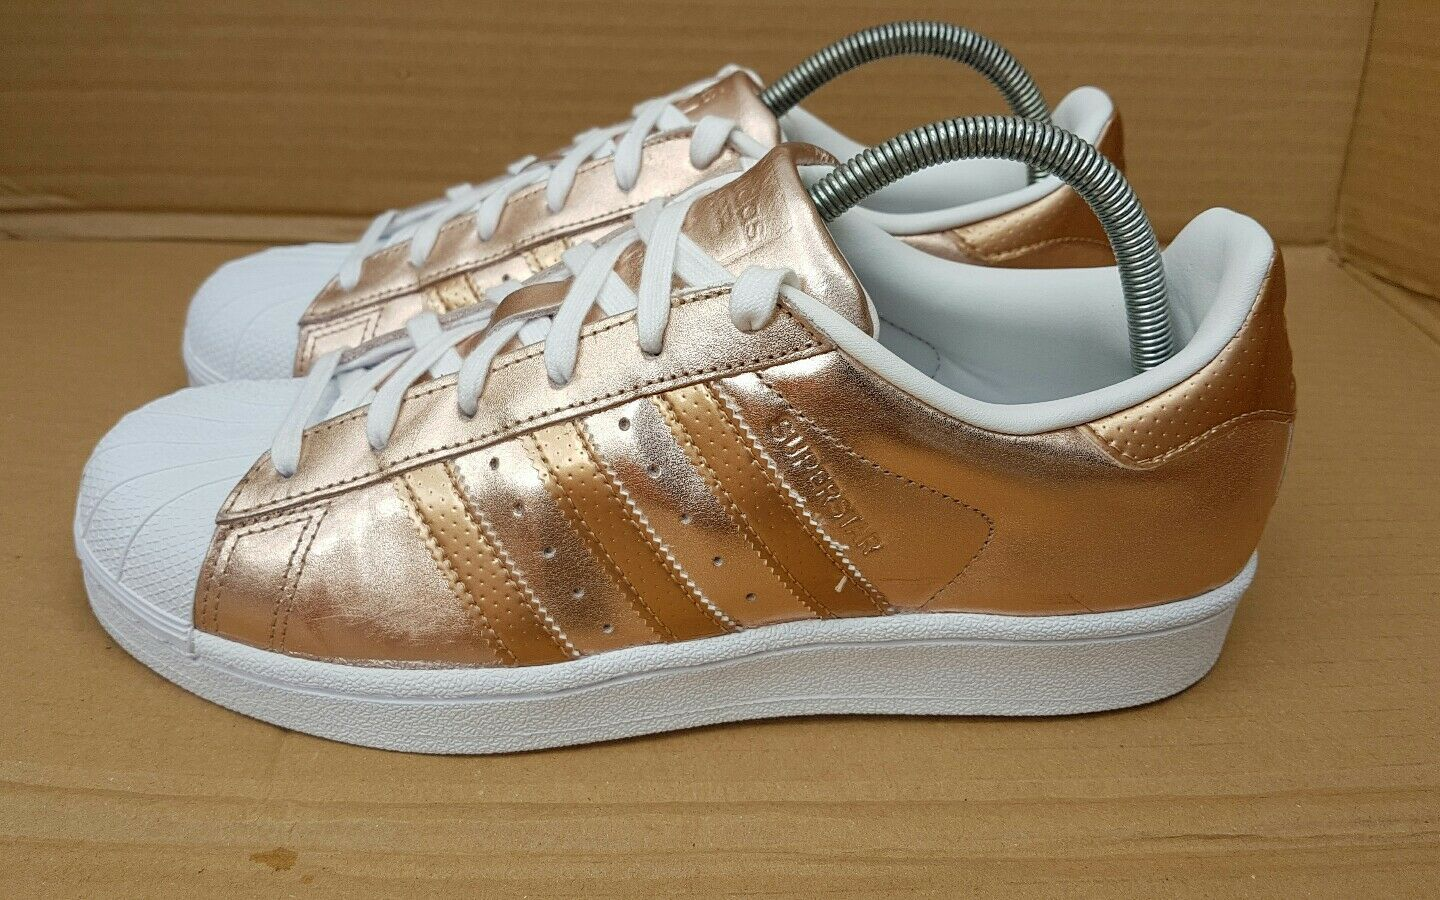 GORGEOUS ADIDAS SUPERSTAR Blanc / ROSE Doré TRAINERS Taille 4.5RARE WORN ONCE